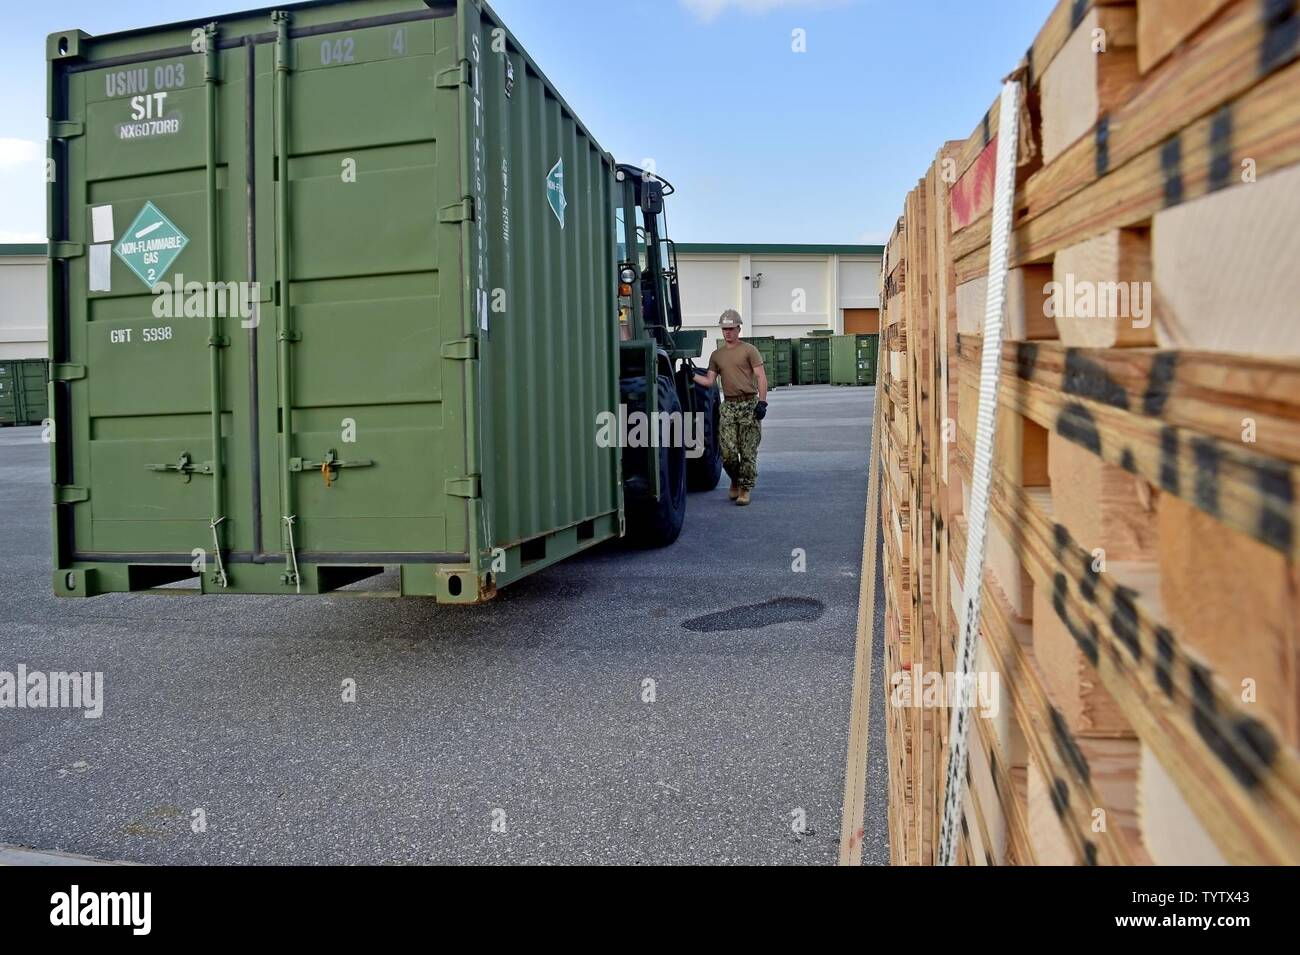 OKINAWA, Japan (Nov. 29, 2016) Petty Officer 2nd Class Nicholas Kerver, assigned to Naval Mobile Construction Battalion (NMCB) 5, gives directions to a forklift operator placing a container on line with others on Camp Shields during an embark exercise. The exercise tests the commands ability to mobilize within 48 hours to react to different types of types of contingency operations around the world. NMCB 5 is the forward deployed Western Pacific NMCB ready to support Major Combat Operations, Humanitarian Assistance and Disaster Relief operations, and to provide general engineering and civil sup - Stock Image